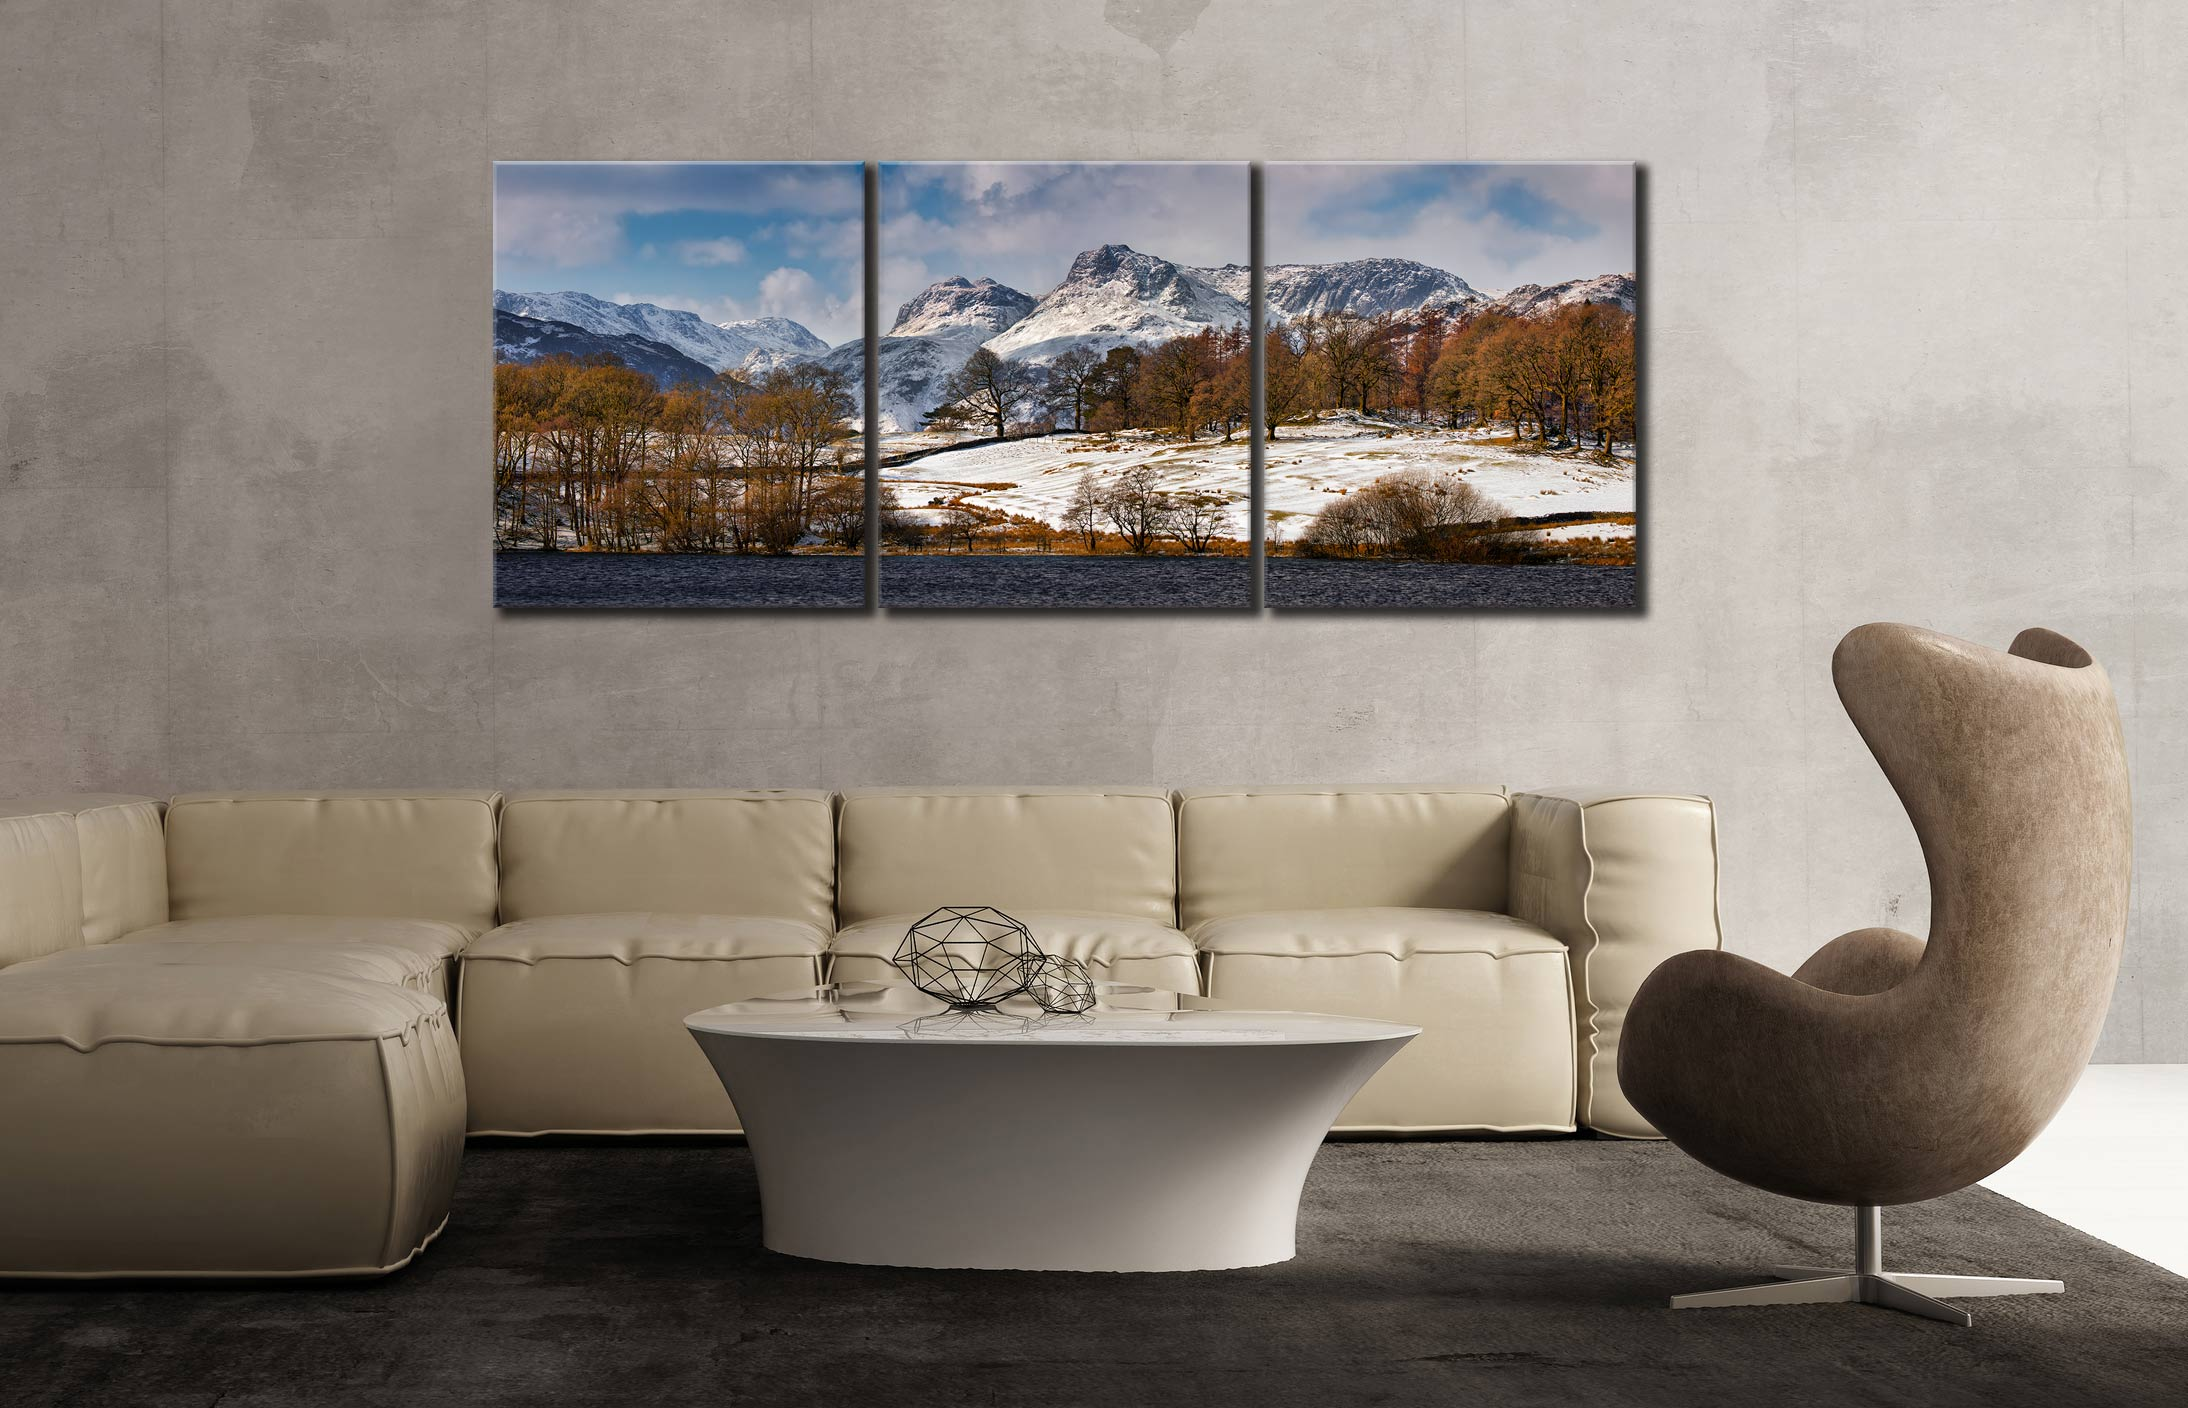 Loughrigg Tarn Winter View  - 3 Panel Canvas on Wall